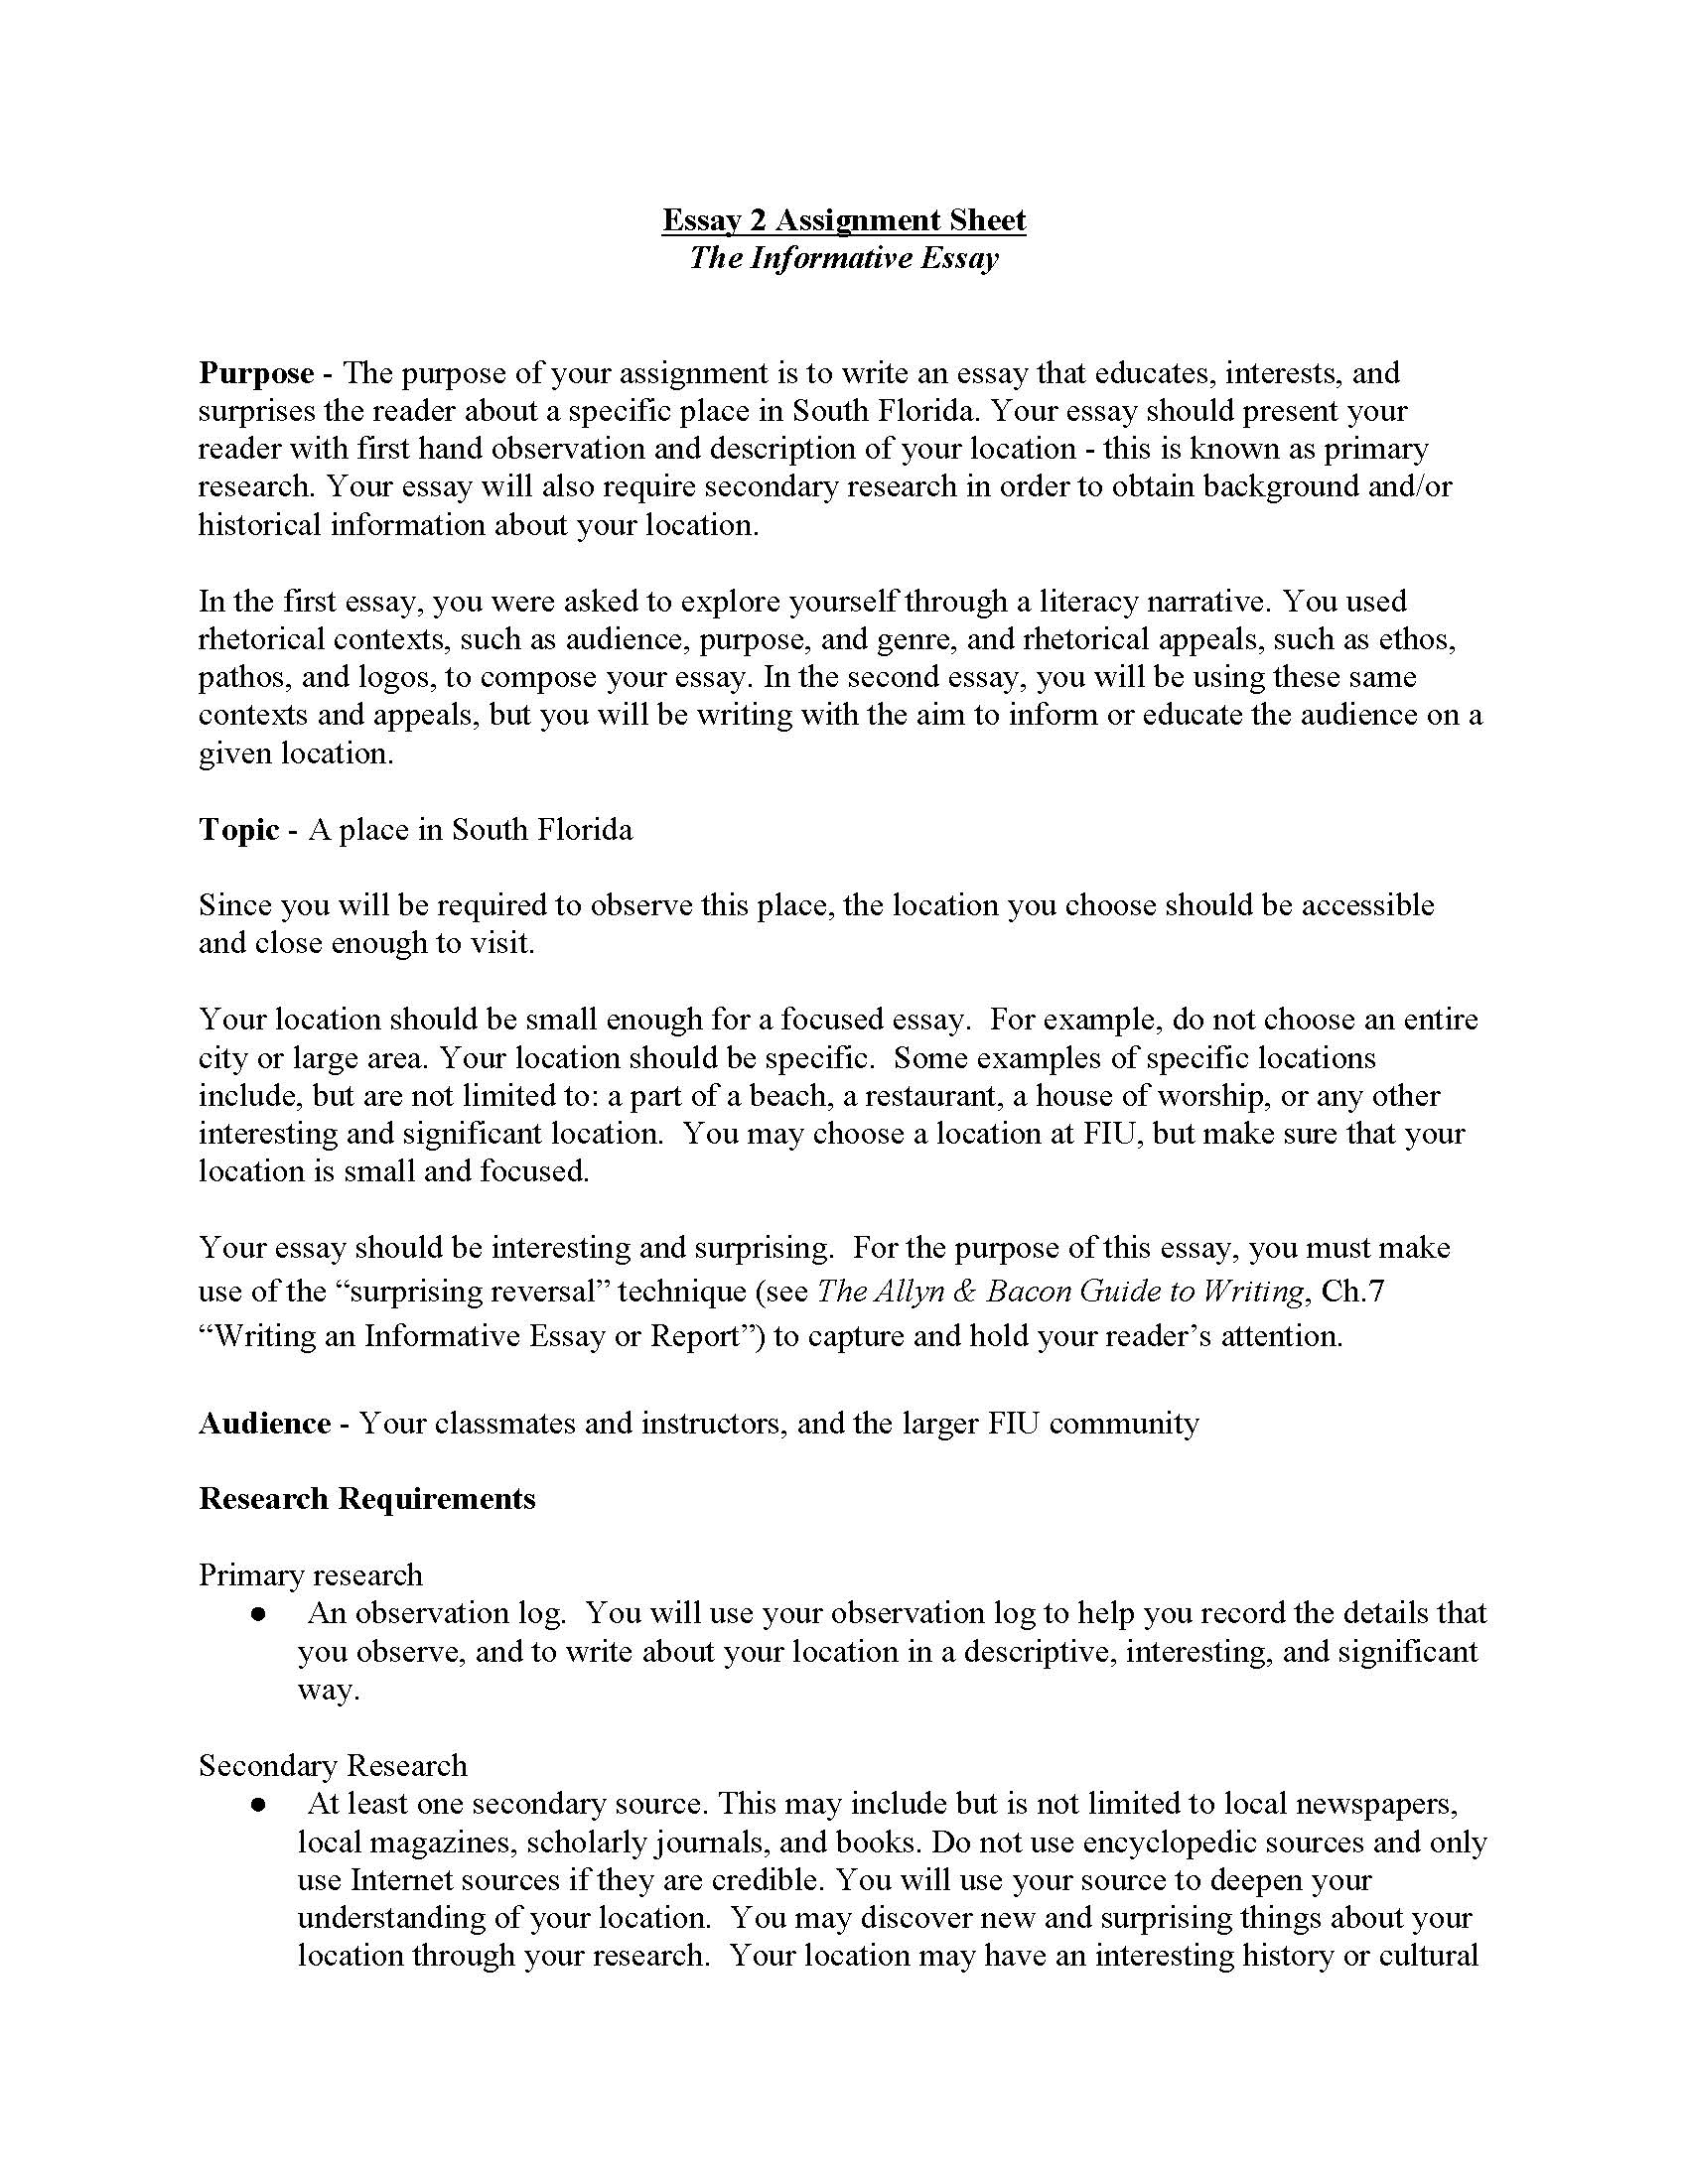 003 Informative Essay Unit Assignment Page 1 Ideas Wondrous Writing Prompts 5th Grade Common Core Expository 4th Pdf Full